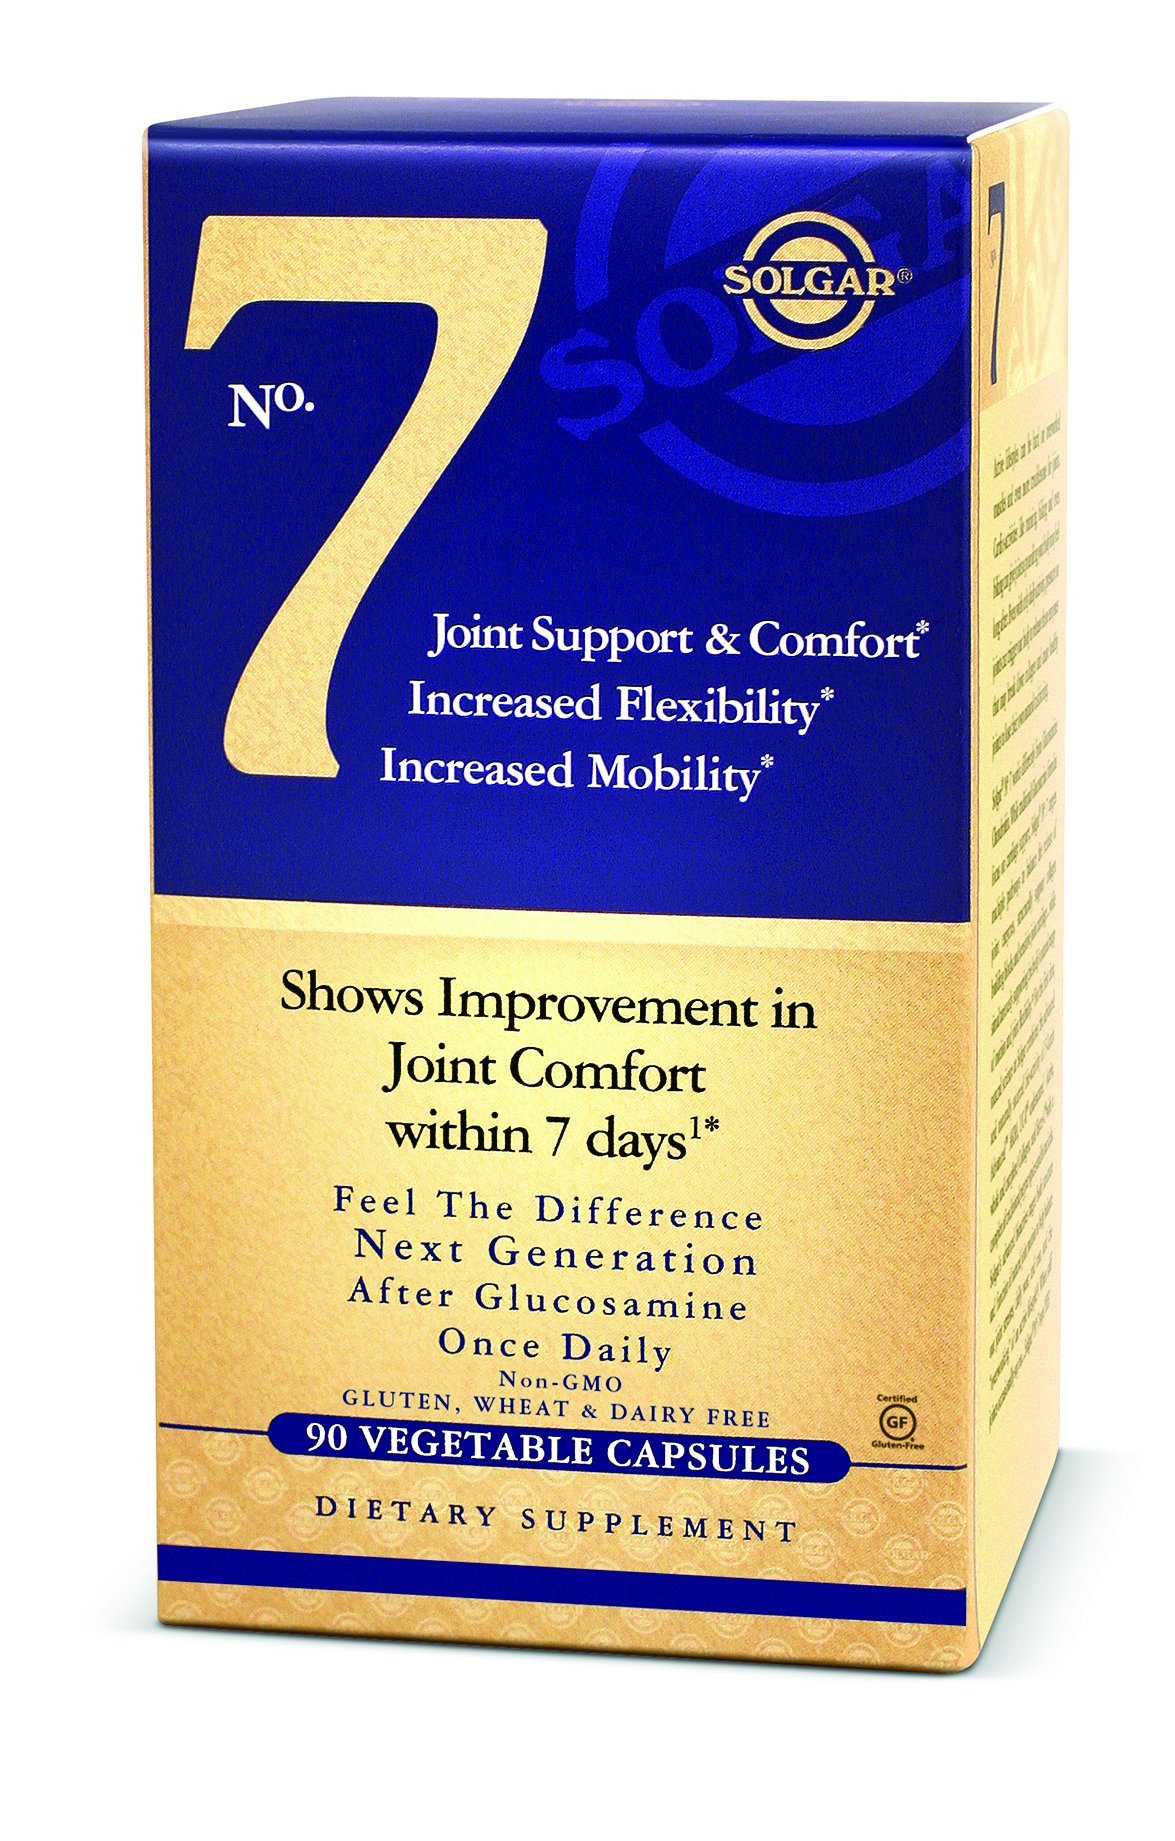 Solgar No. 7, Joint Support & Comfort, Increased Flexibility, Increased Mobility, Non-GMO, 90 Vegetable Capsules by Solgar